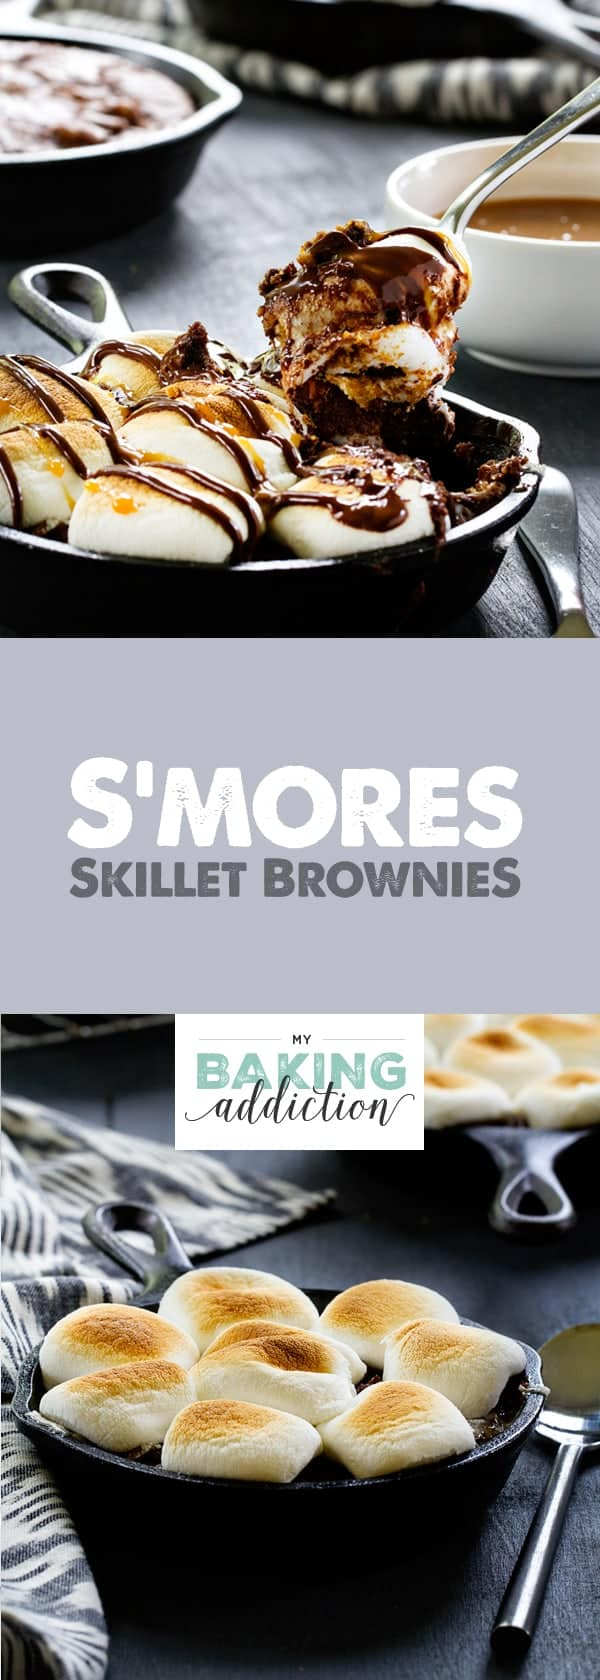 mores Skillet Brownies have a graham cracker crust topped with a ...